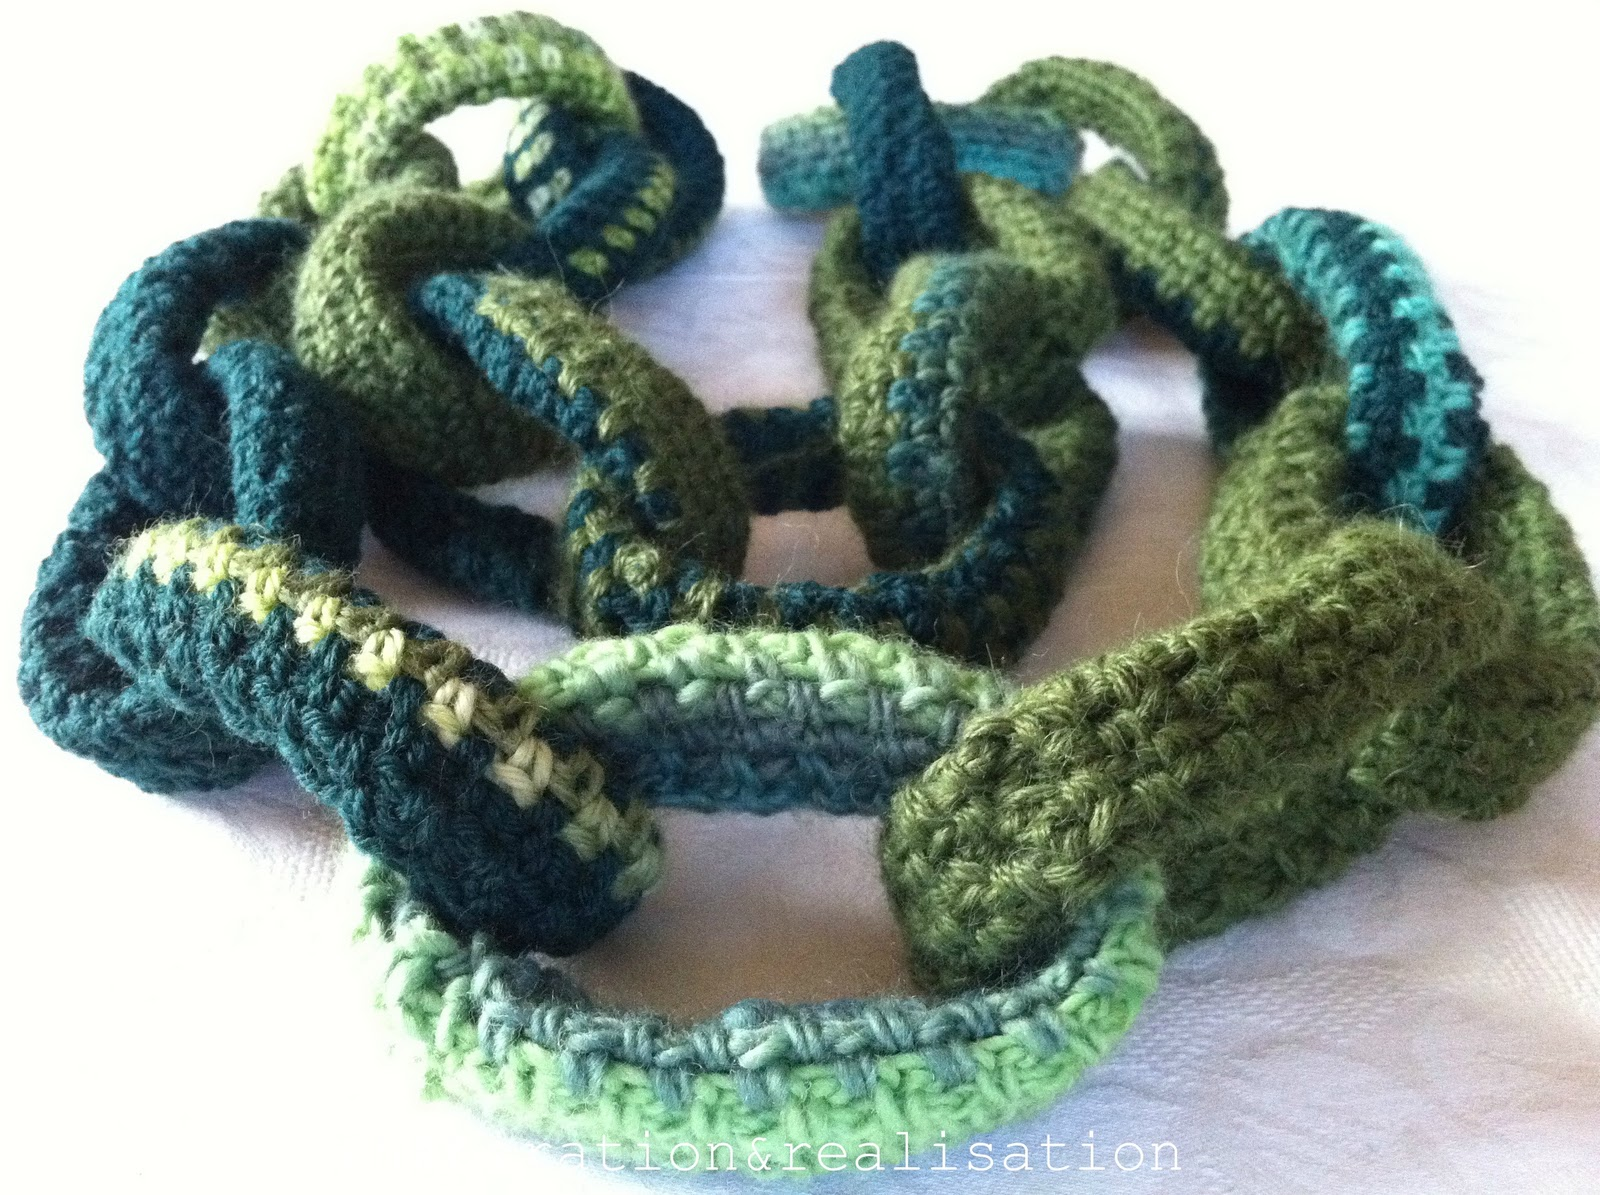 Crocheting Into Chain : ... and realisation: DIY fashion blog: crochet: a chain-link scarf